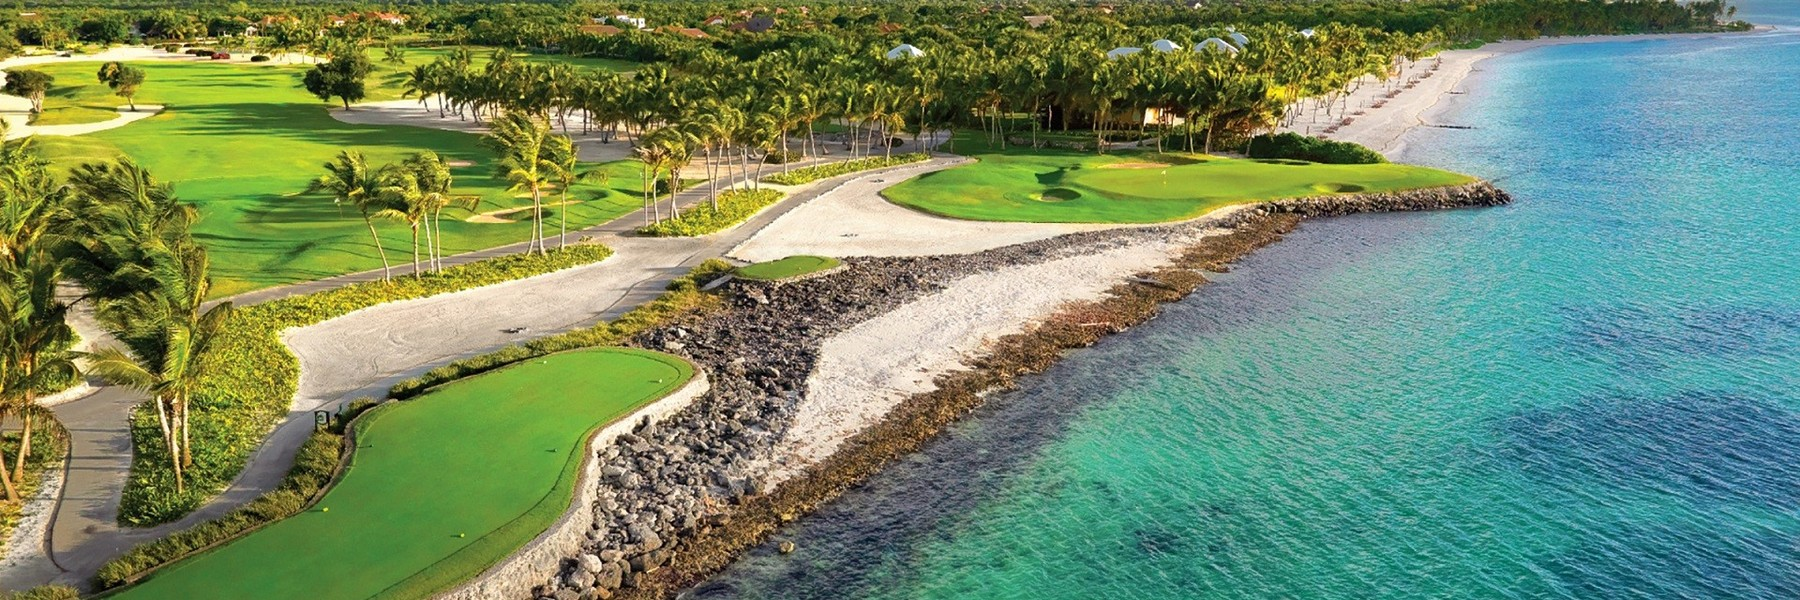 Golf Vacation Package - Great Deal in Cap Cana!  AlSol Luxury Village All-Inclusive + Spectacular Golf for $394 per day!